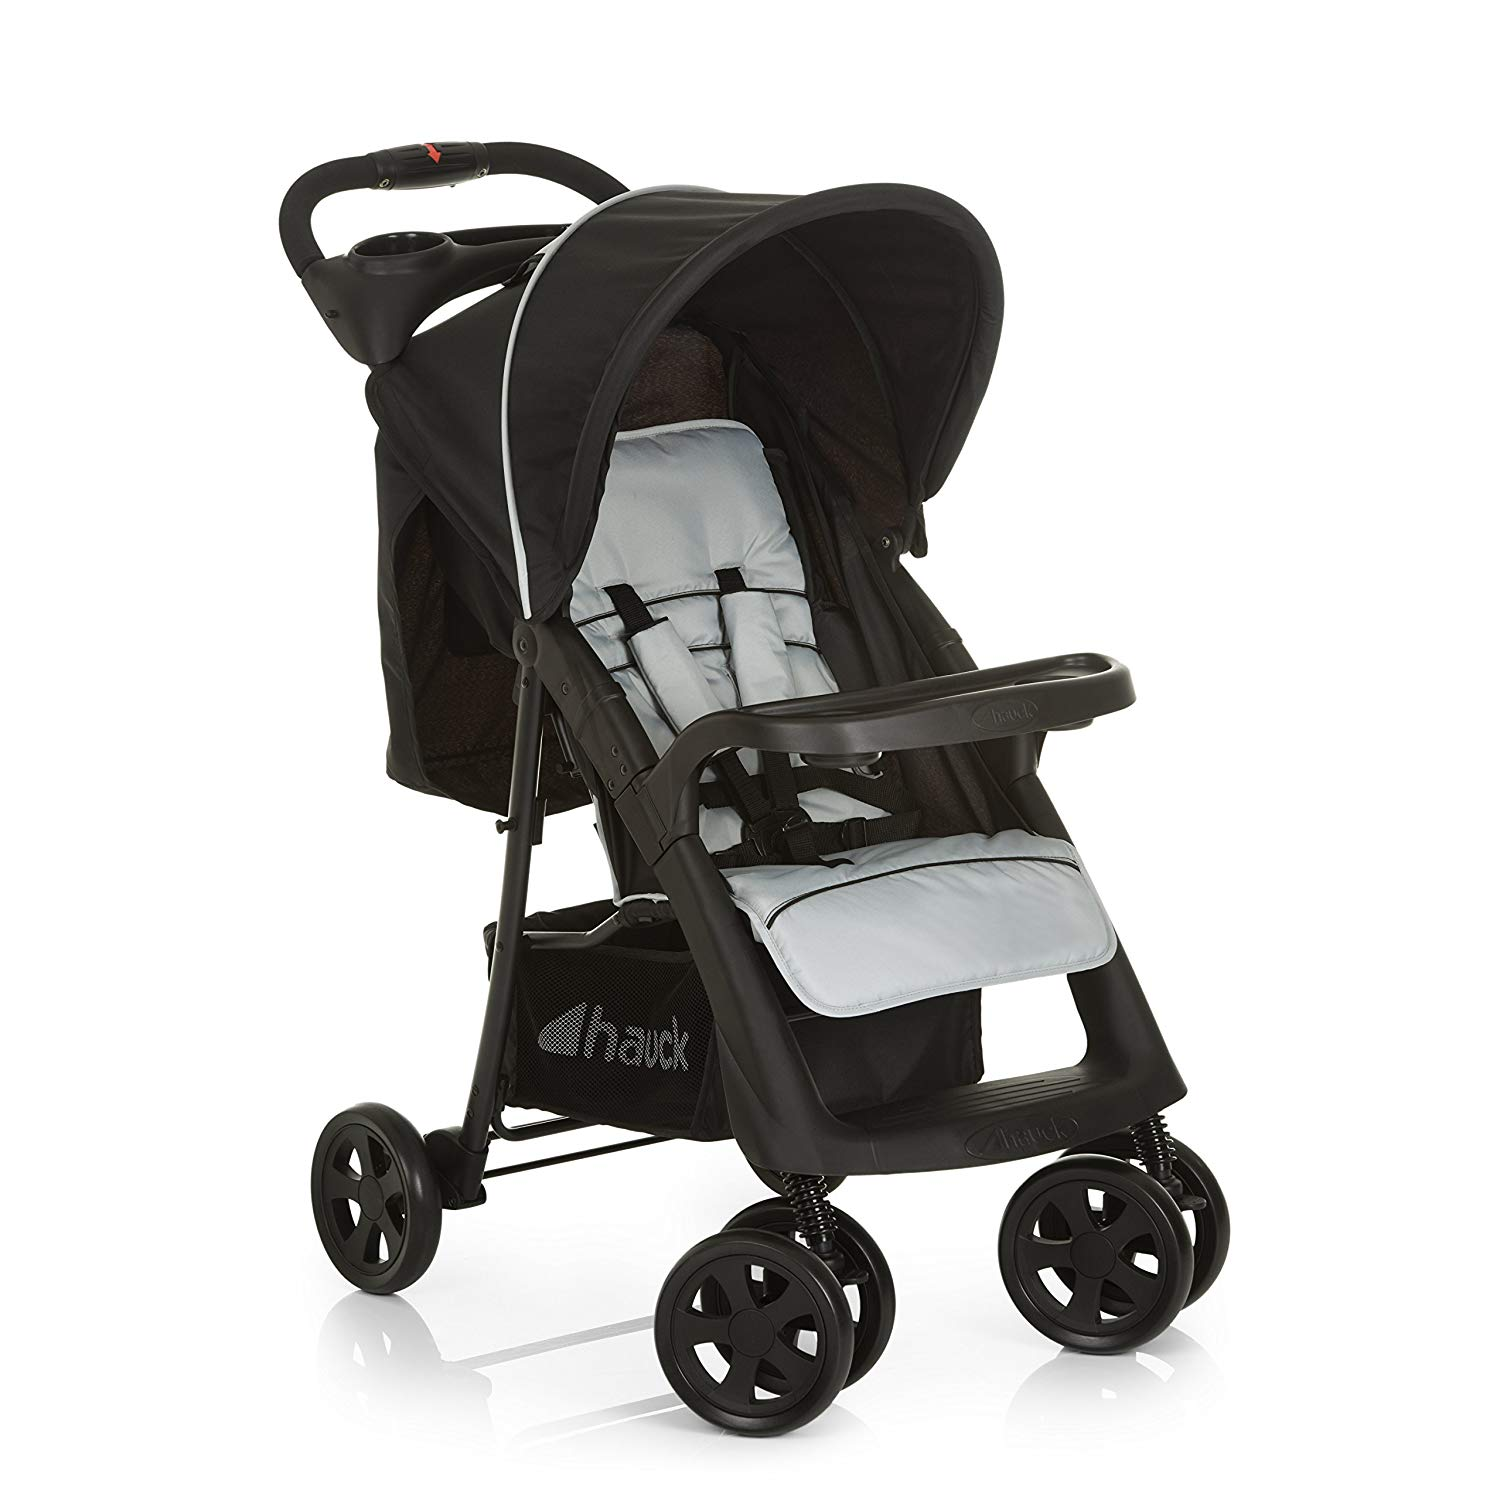 Hauck Shopper Neo II, Folding Pushchair from Birth to 25 kg for £58.39